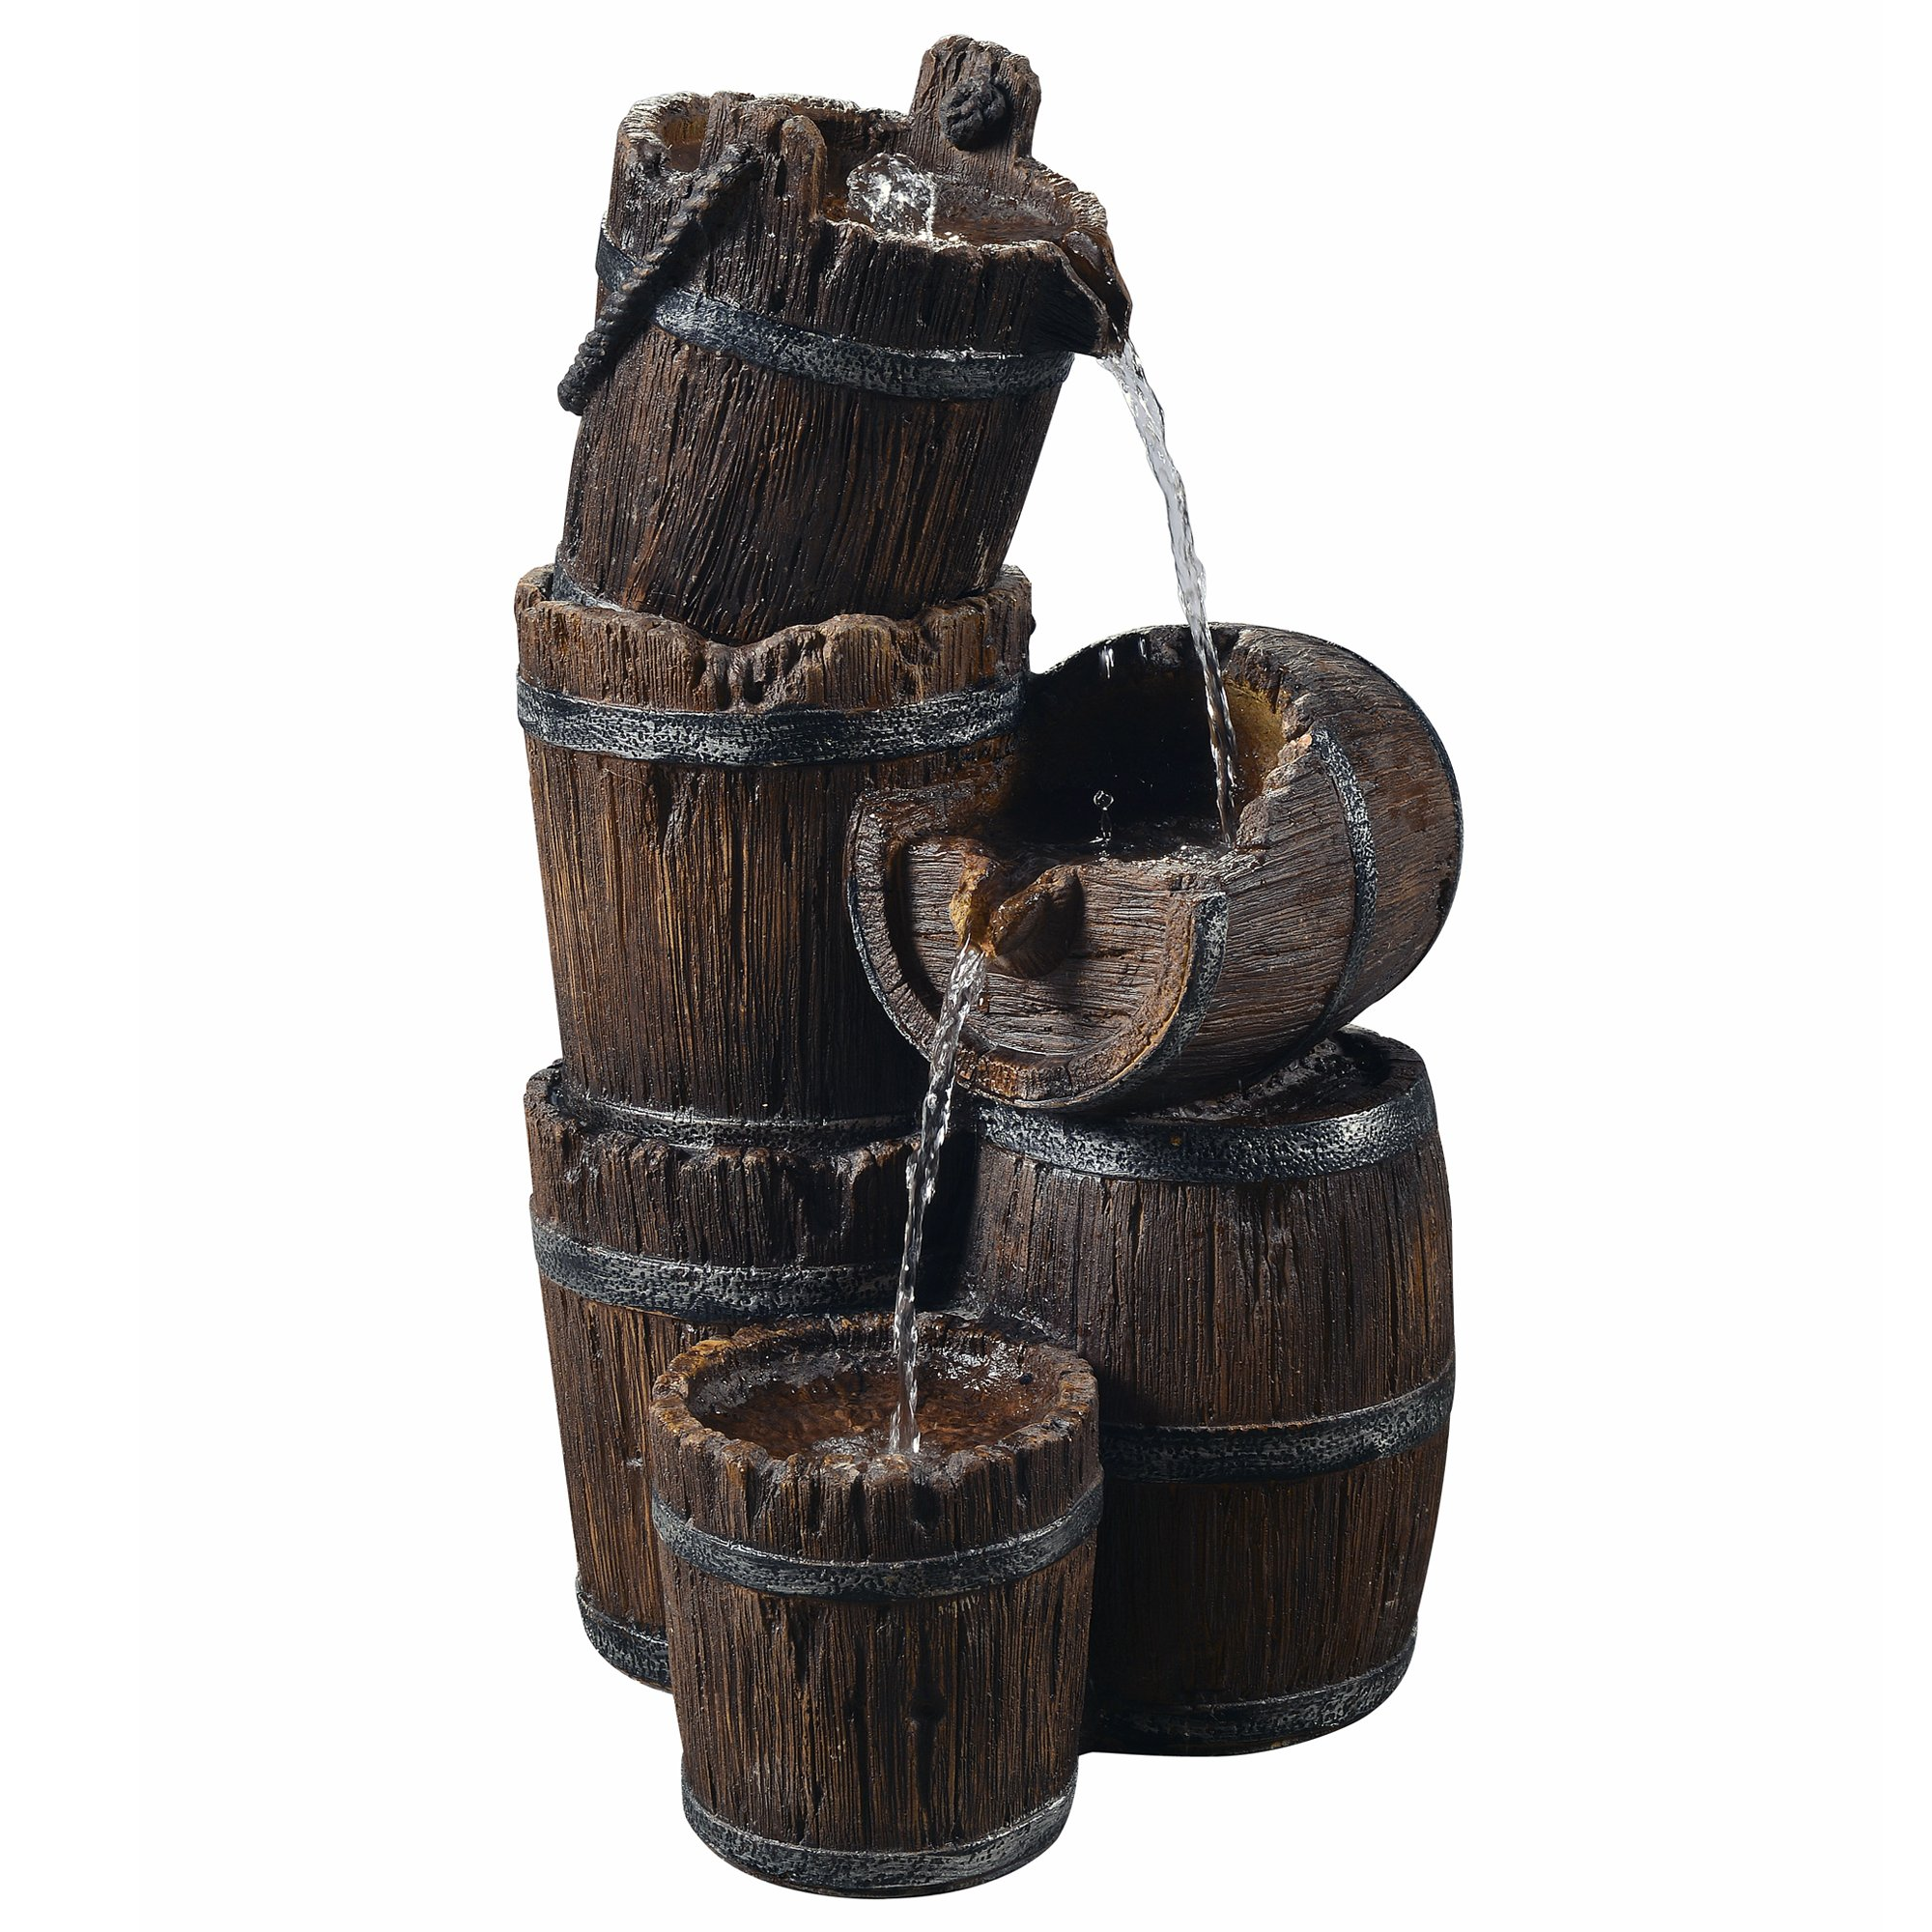 Peaktop Outdoor Vintage 3-Tier Barrel Waterfall Fountain by Peaktop